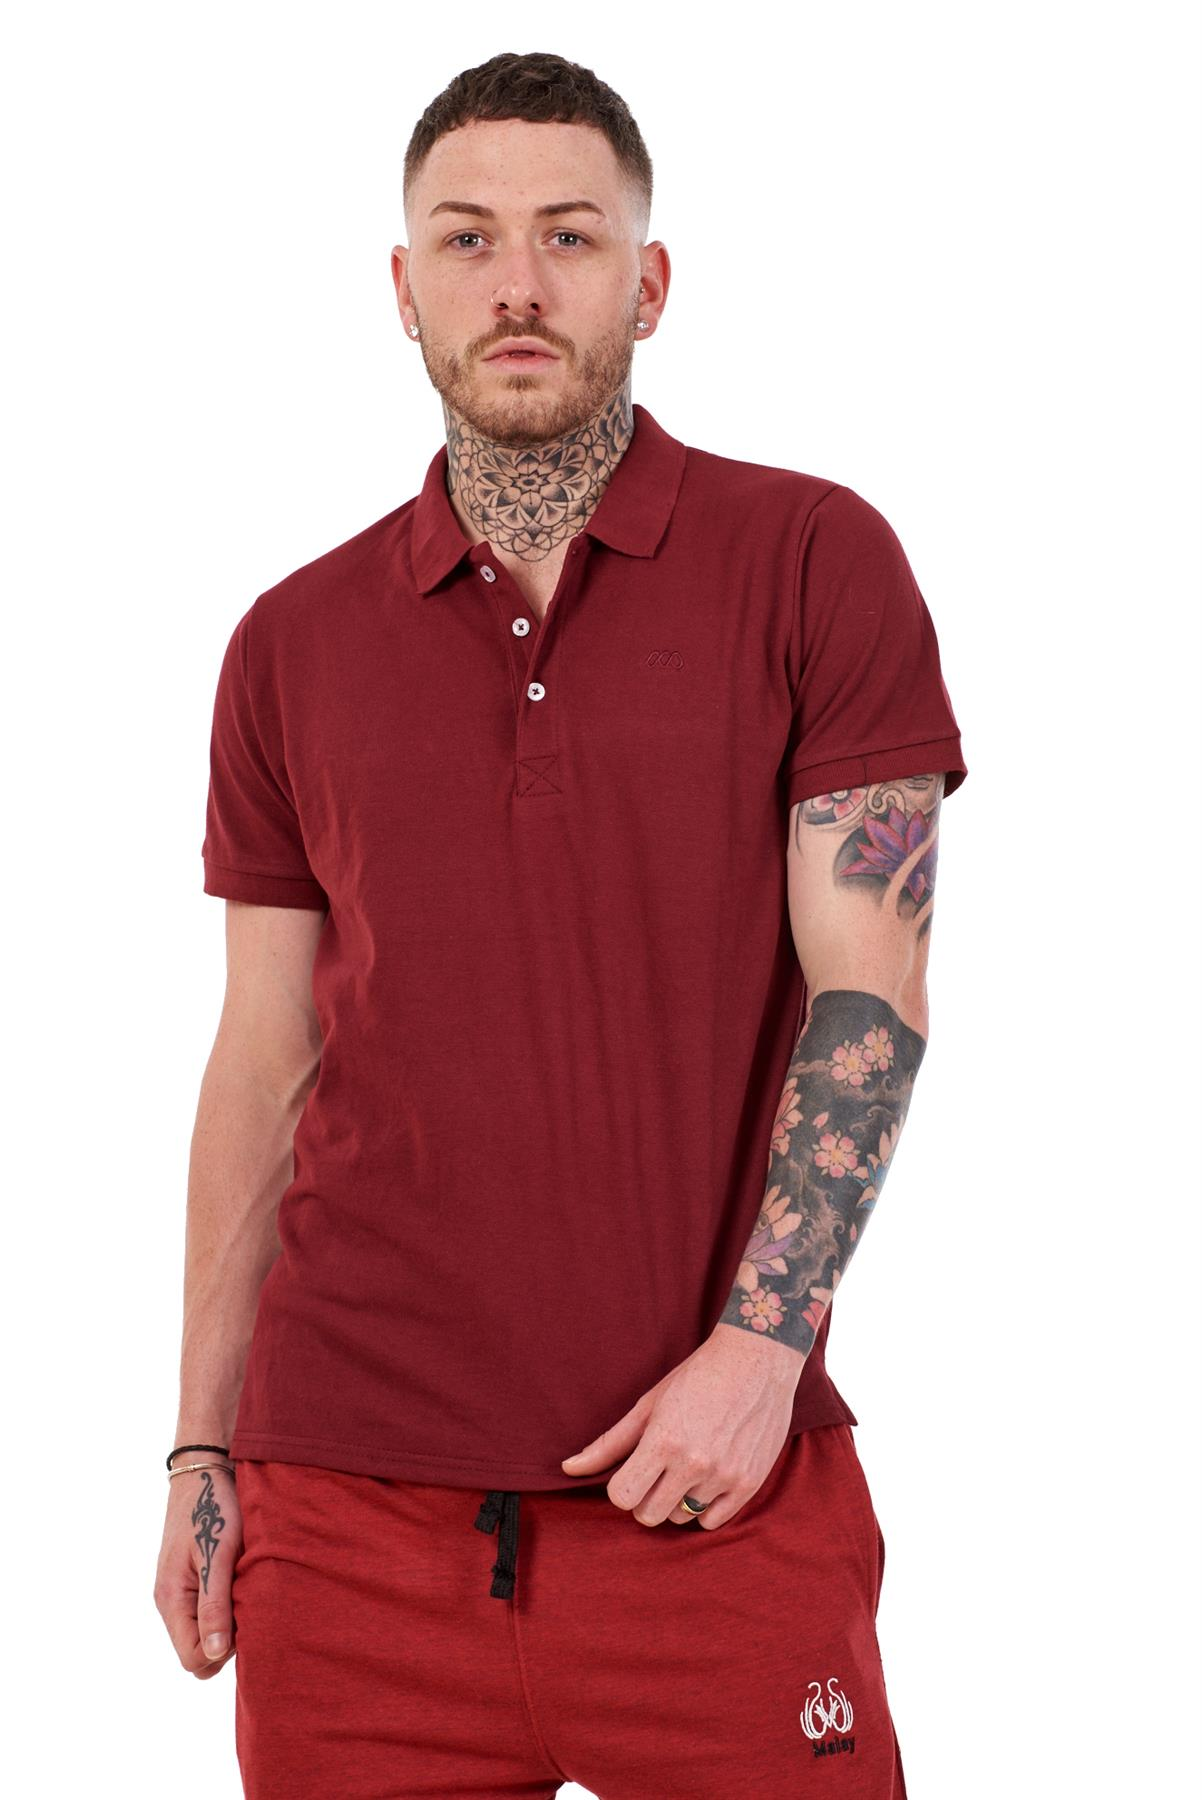 Mens-Plain-Solid-Polo-Cotton-T-Shirts-Regular-fit-Casual-Formal-Shirt-Top-M-XXL thumbnail 8